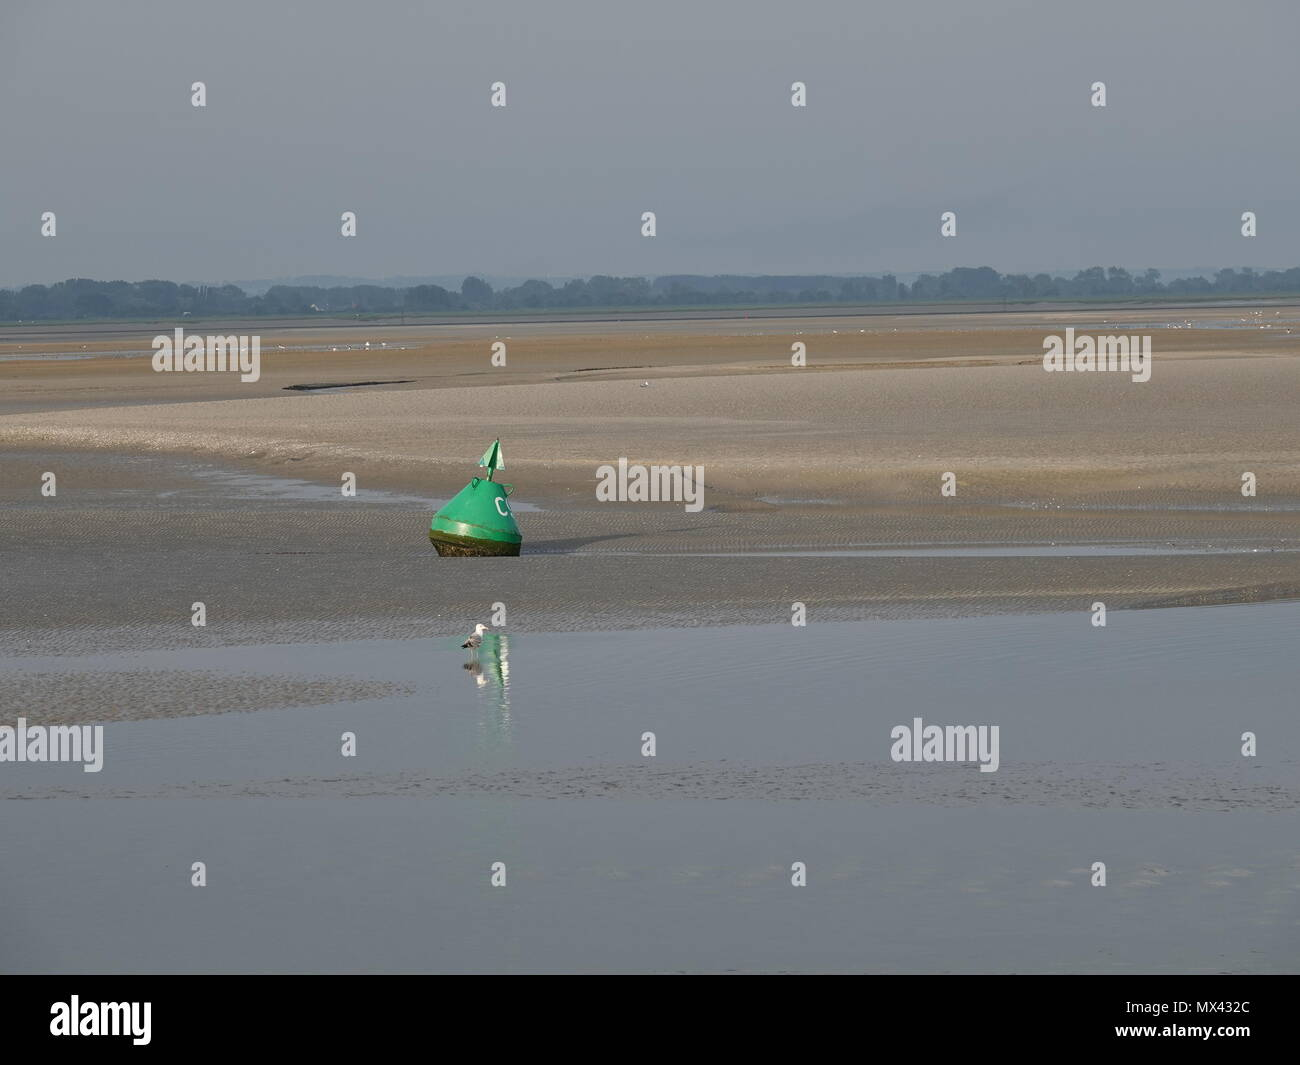 Gull standing at the edge of the water in the reflection of a green channel marker at low tide, Le Crotoy, France - Stock Image